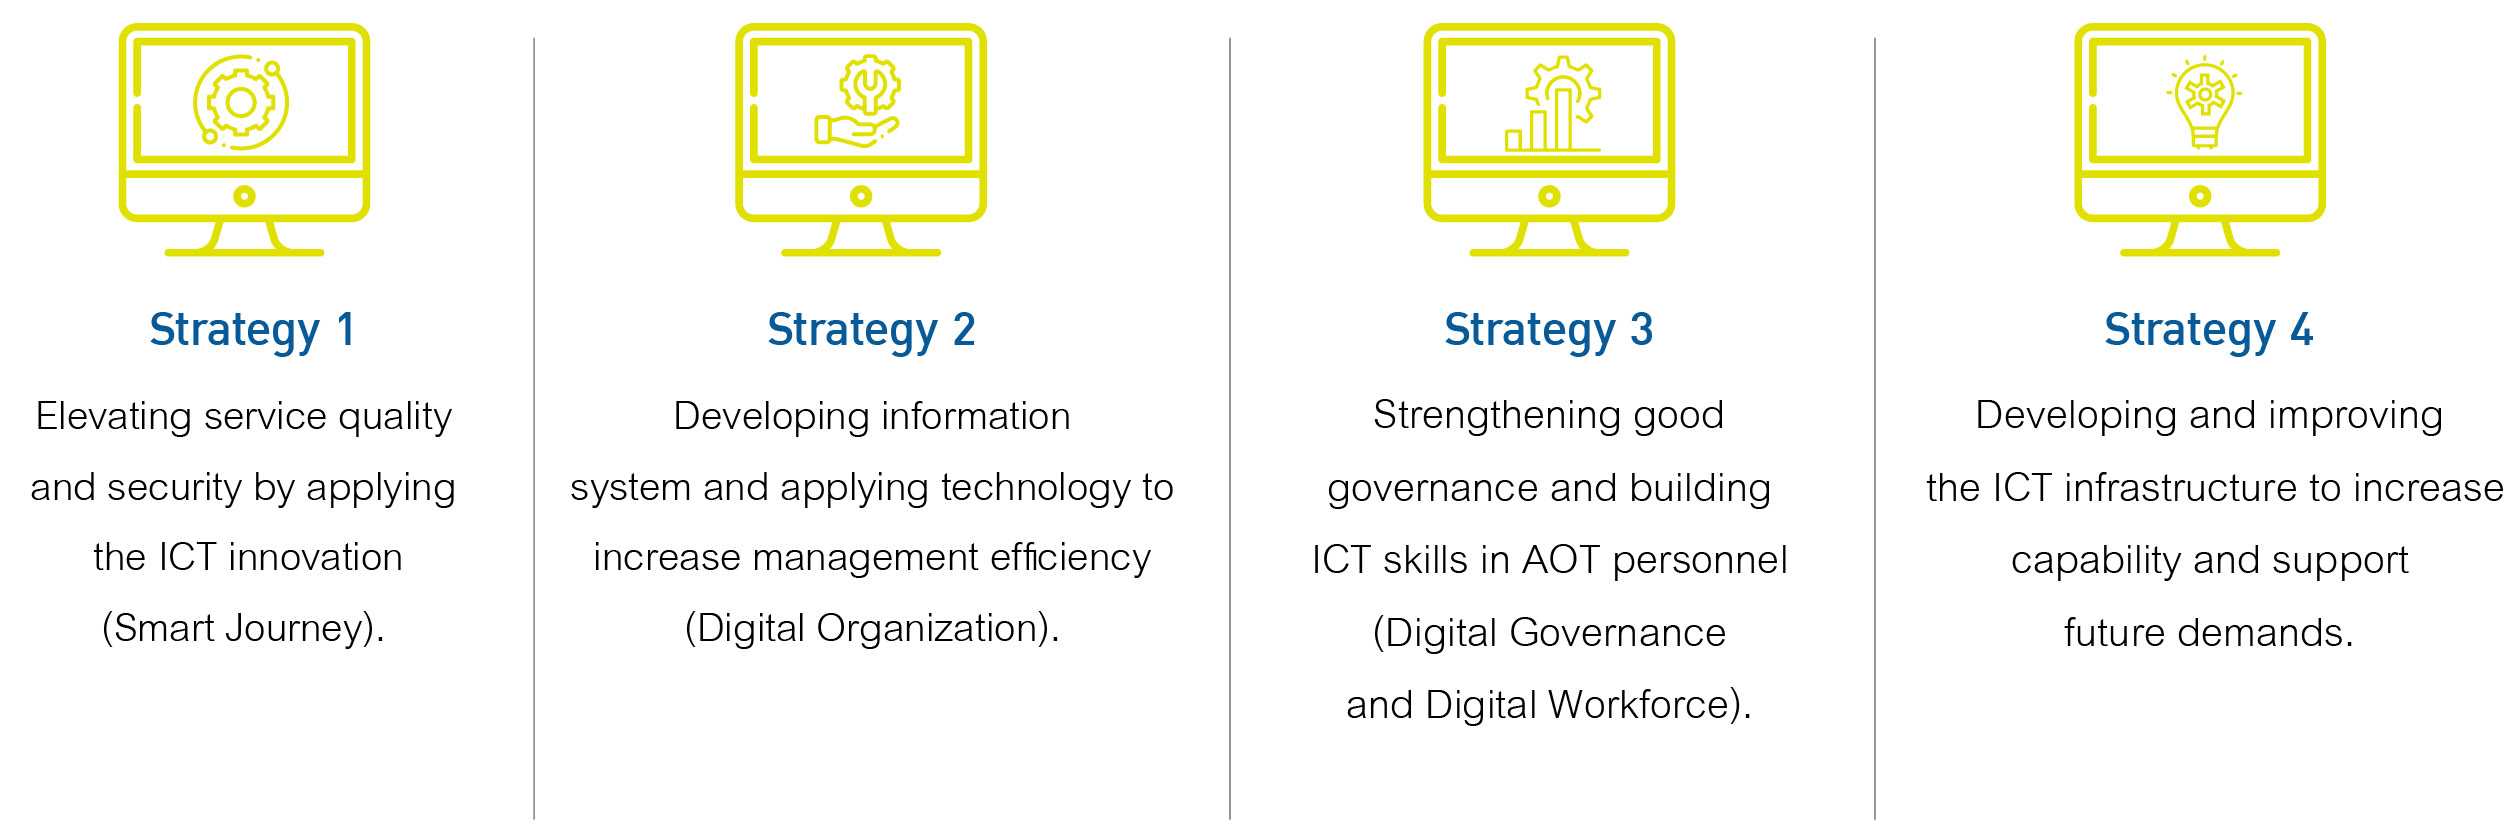 Digital Governance Policy and Guidelines